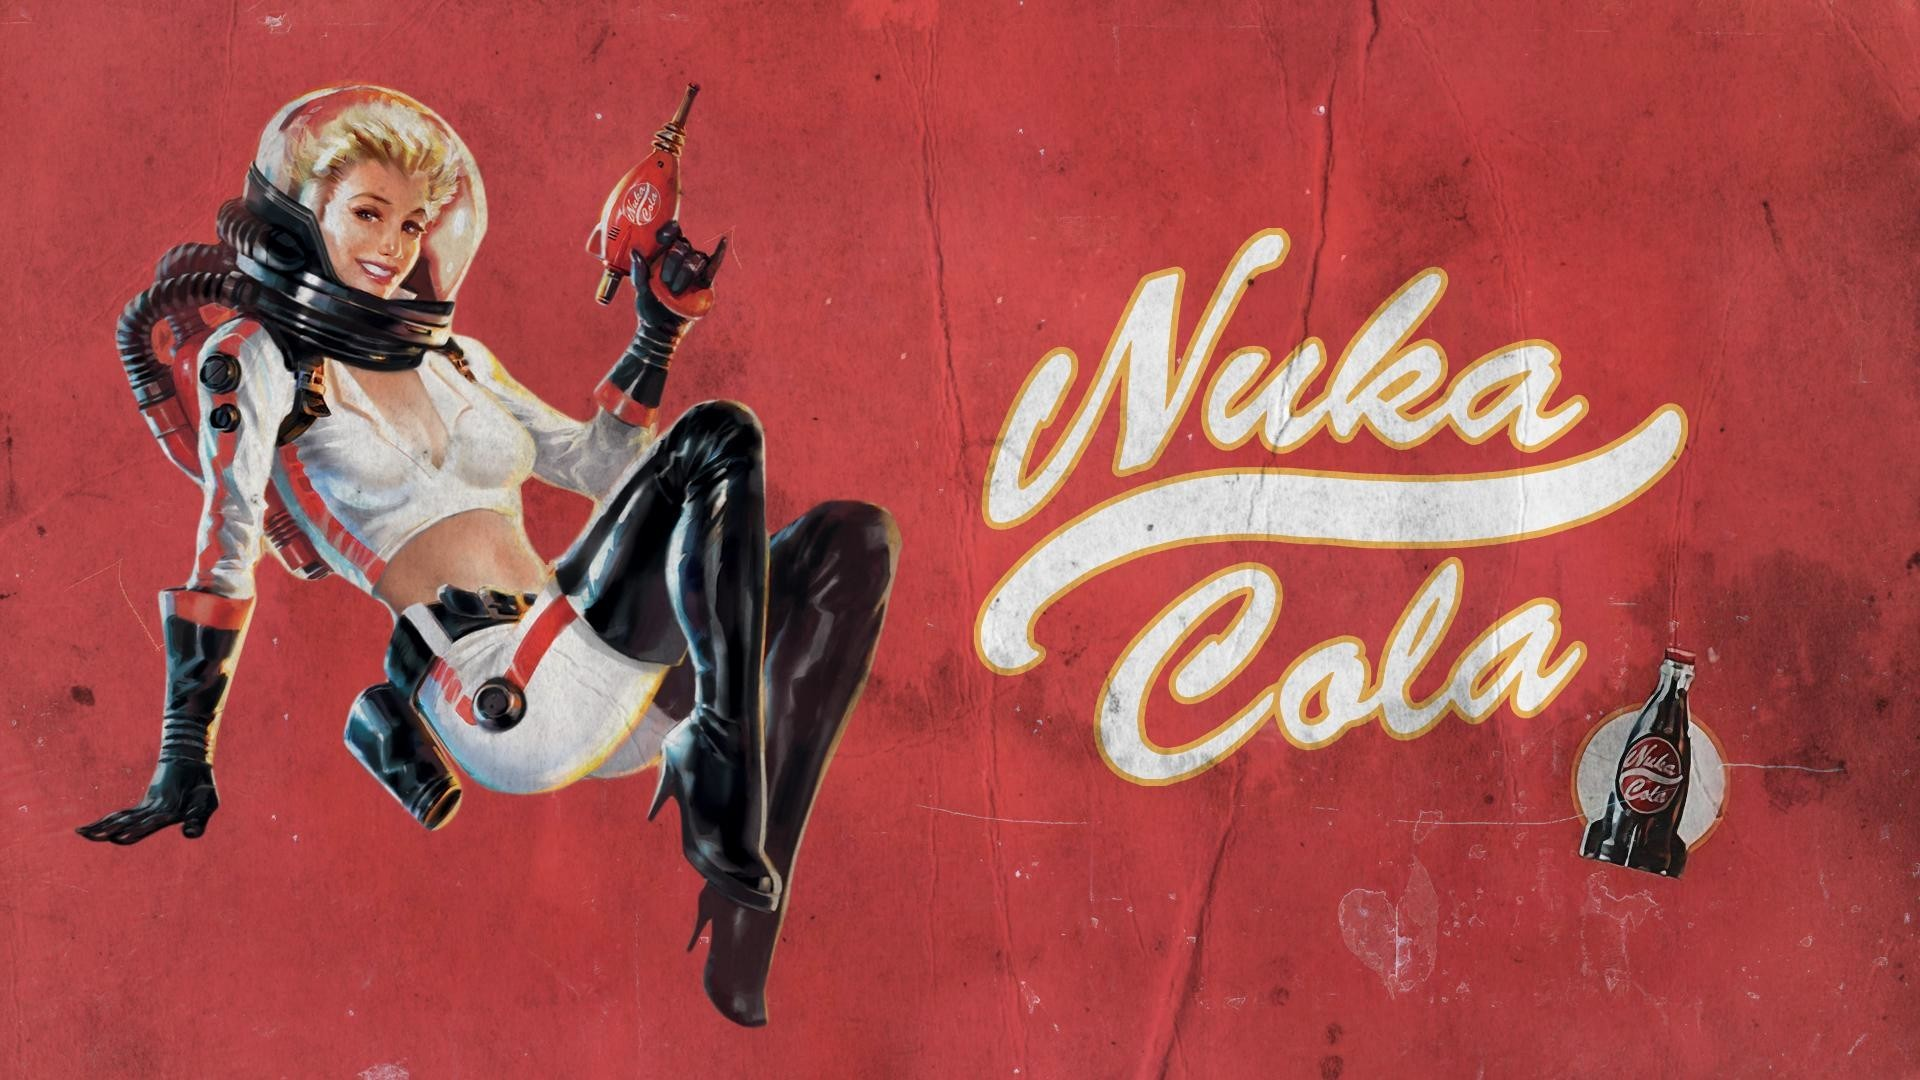 1920x1080 7 Nuka Cola HD Wallpapers Backgrounds Wallpaper Abyss Source · Fixed up  the Nuka Girl